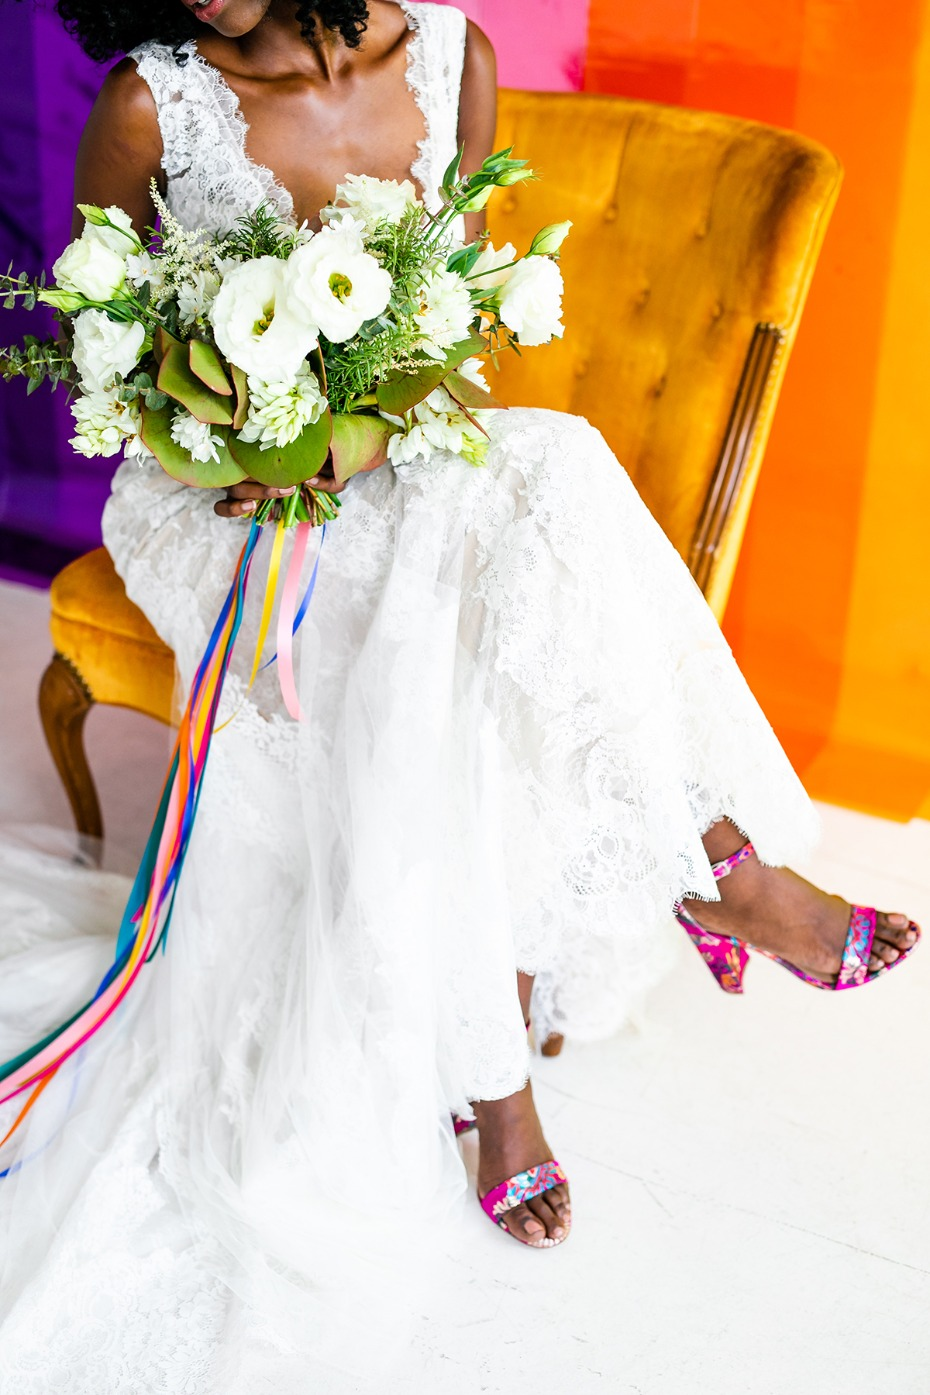 Four Ways To Kick Up The Color In Your Wedding